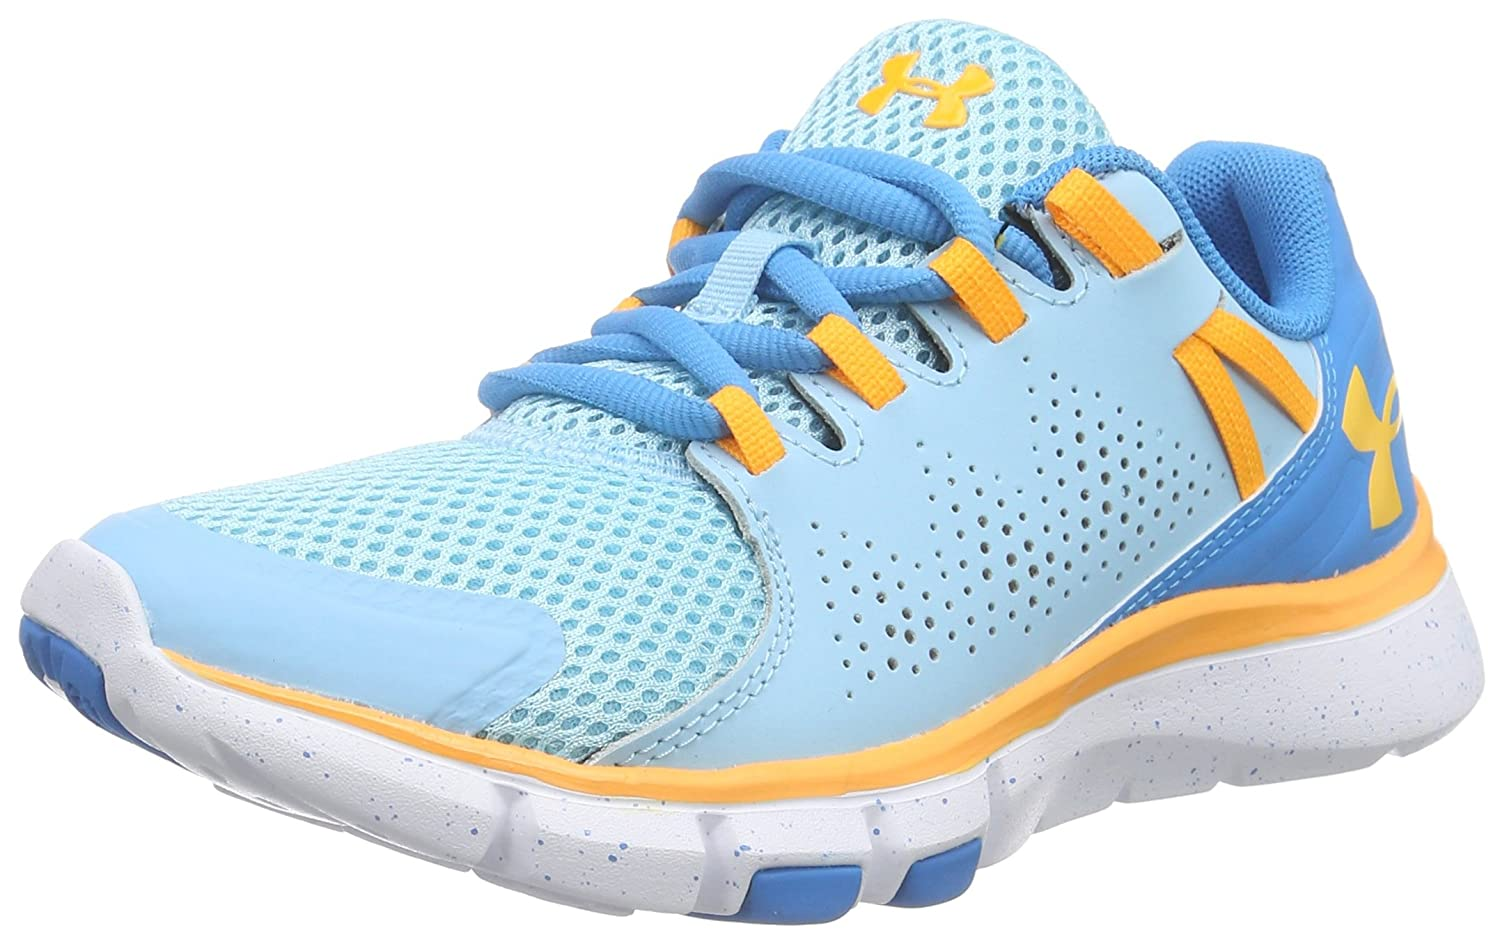 Under Armour - UA W Micro G Limitless TR, Zapatillas Deportivas para Interior Mujer, Azul (Sky Blue), 42 EU: Amazon.es: Zapatos y complementos